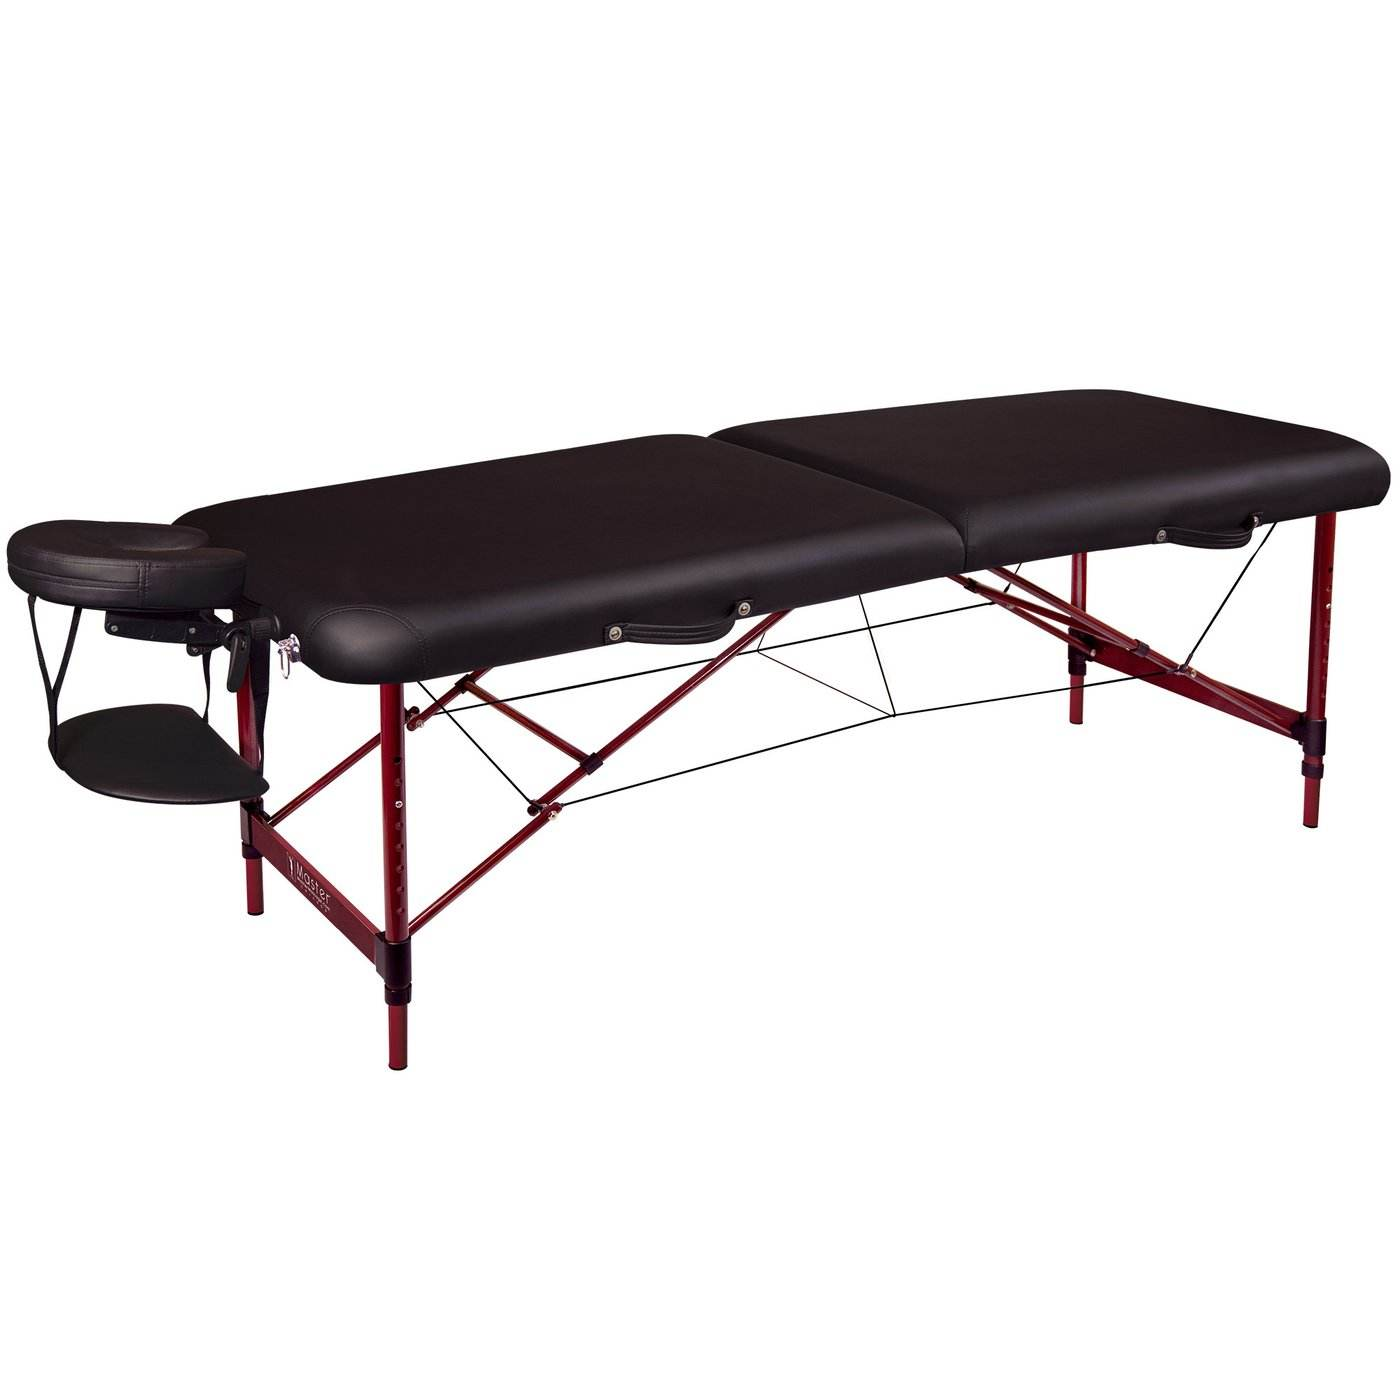 "Master Massage 28 ""Zephyr De Ideaal Platform Voor Elke Begin Massage Therapeuten Draagbare Massage Tafel"